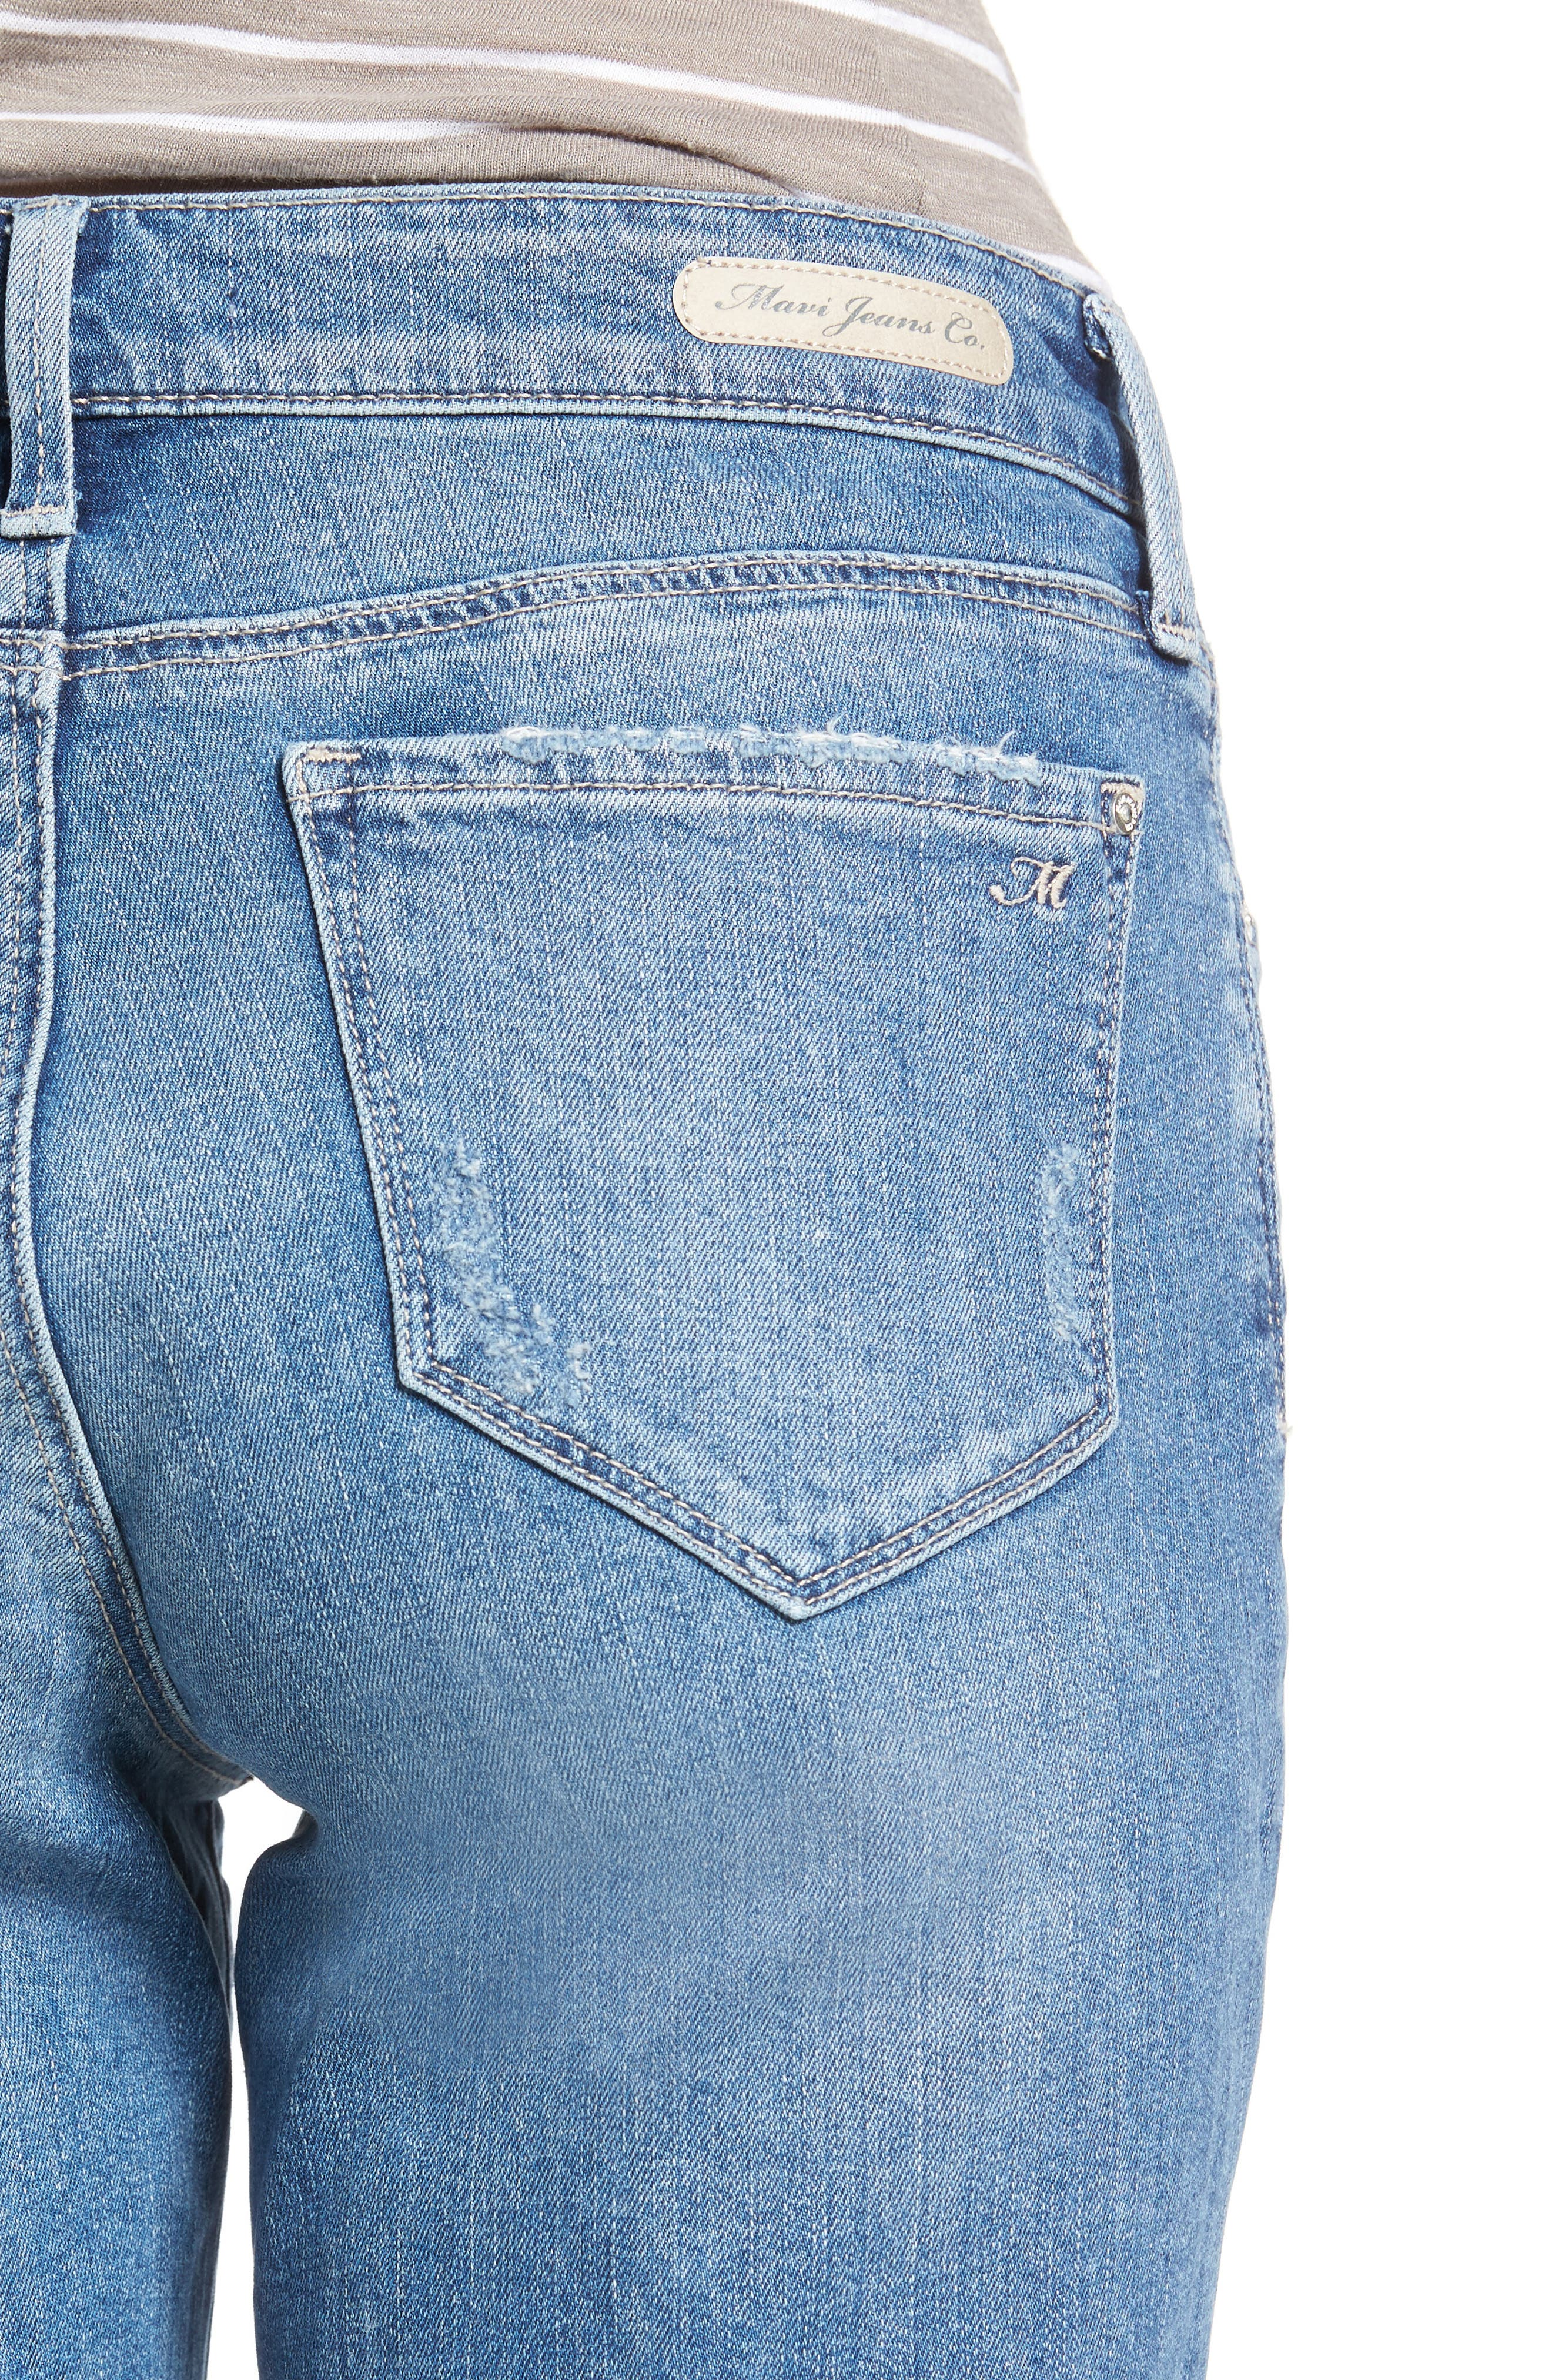 Alexis Ripped Denim Shorts,                             Alternate thumbnail 4, color,